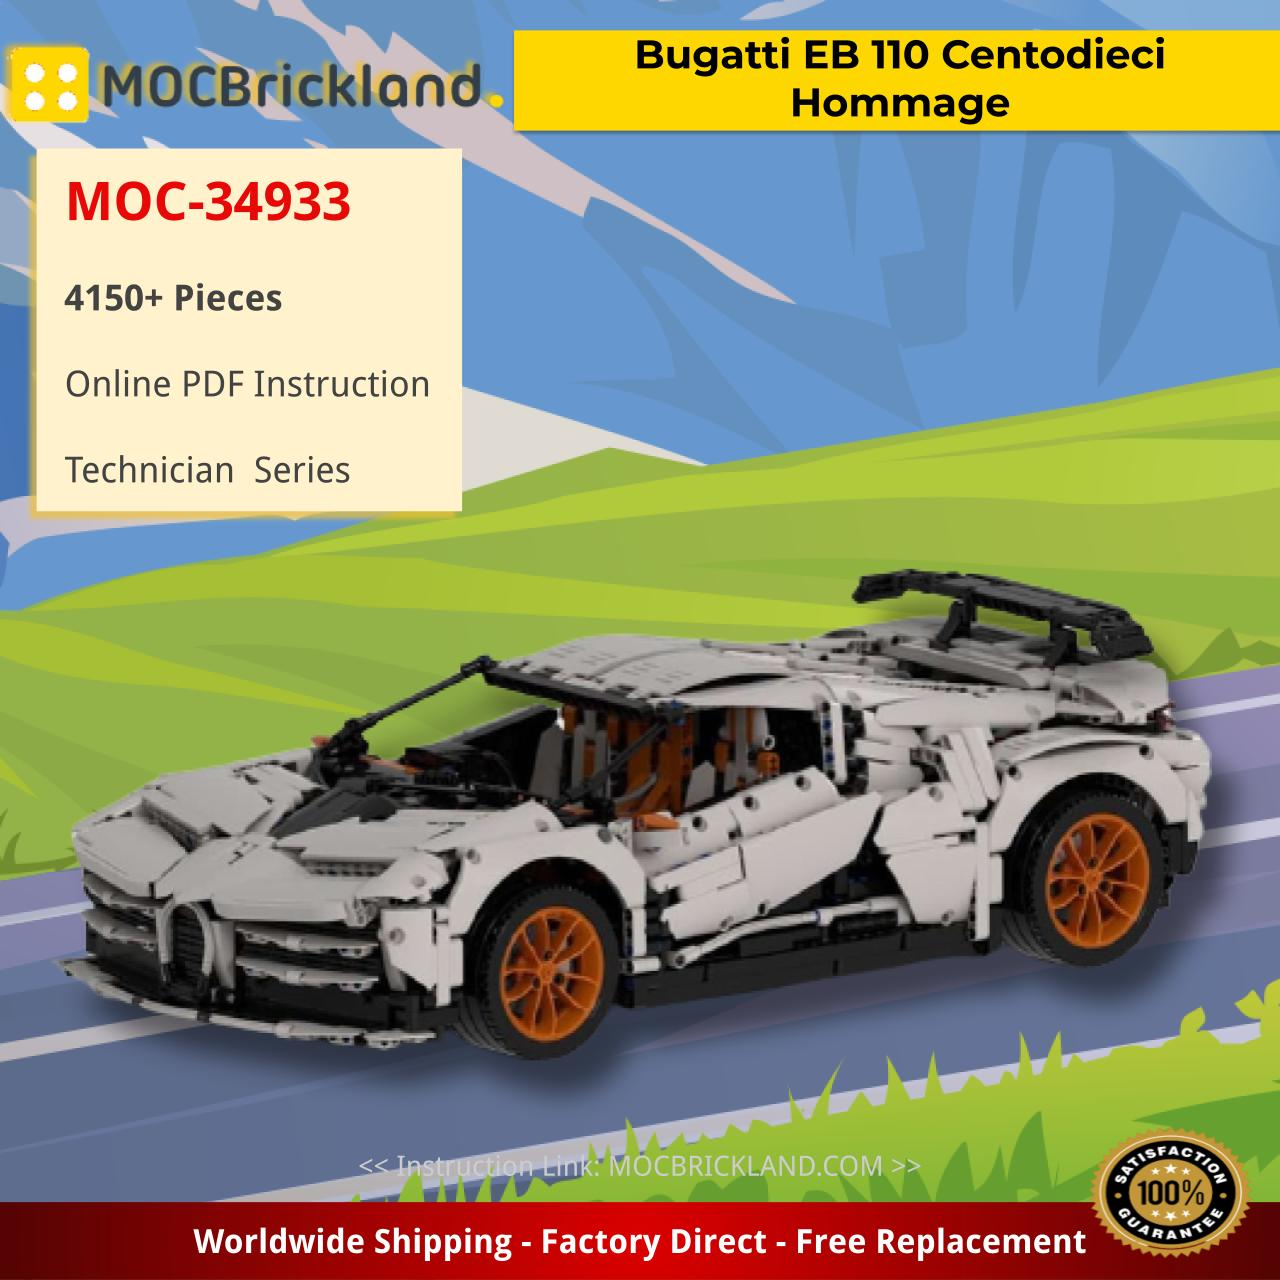 Bugatti EB 110 Centodieci Hommage Technic MOC-34933 by The one from the Swabian WITH 4150 PIECES